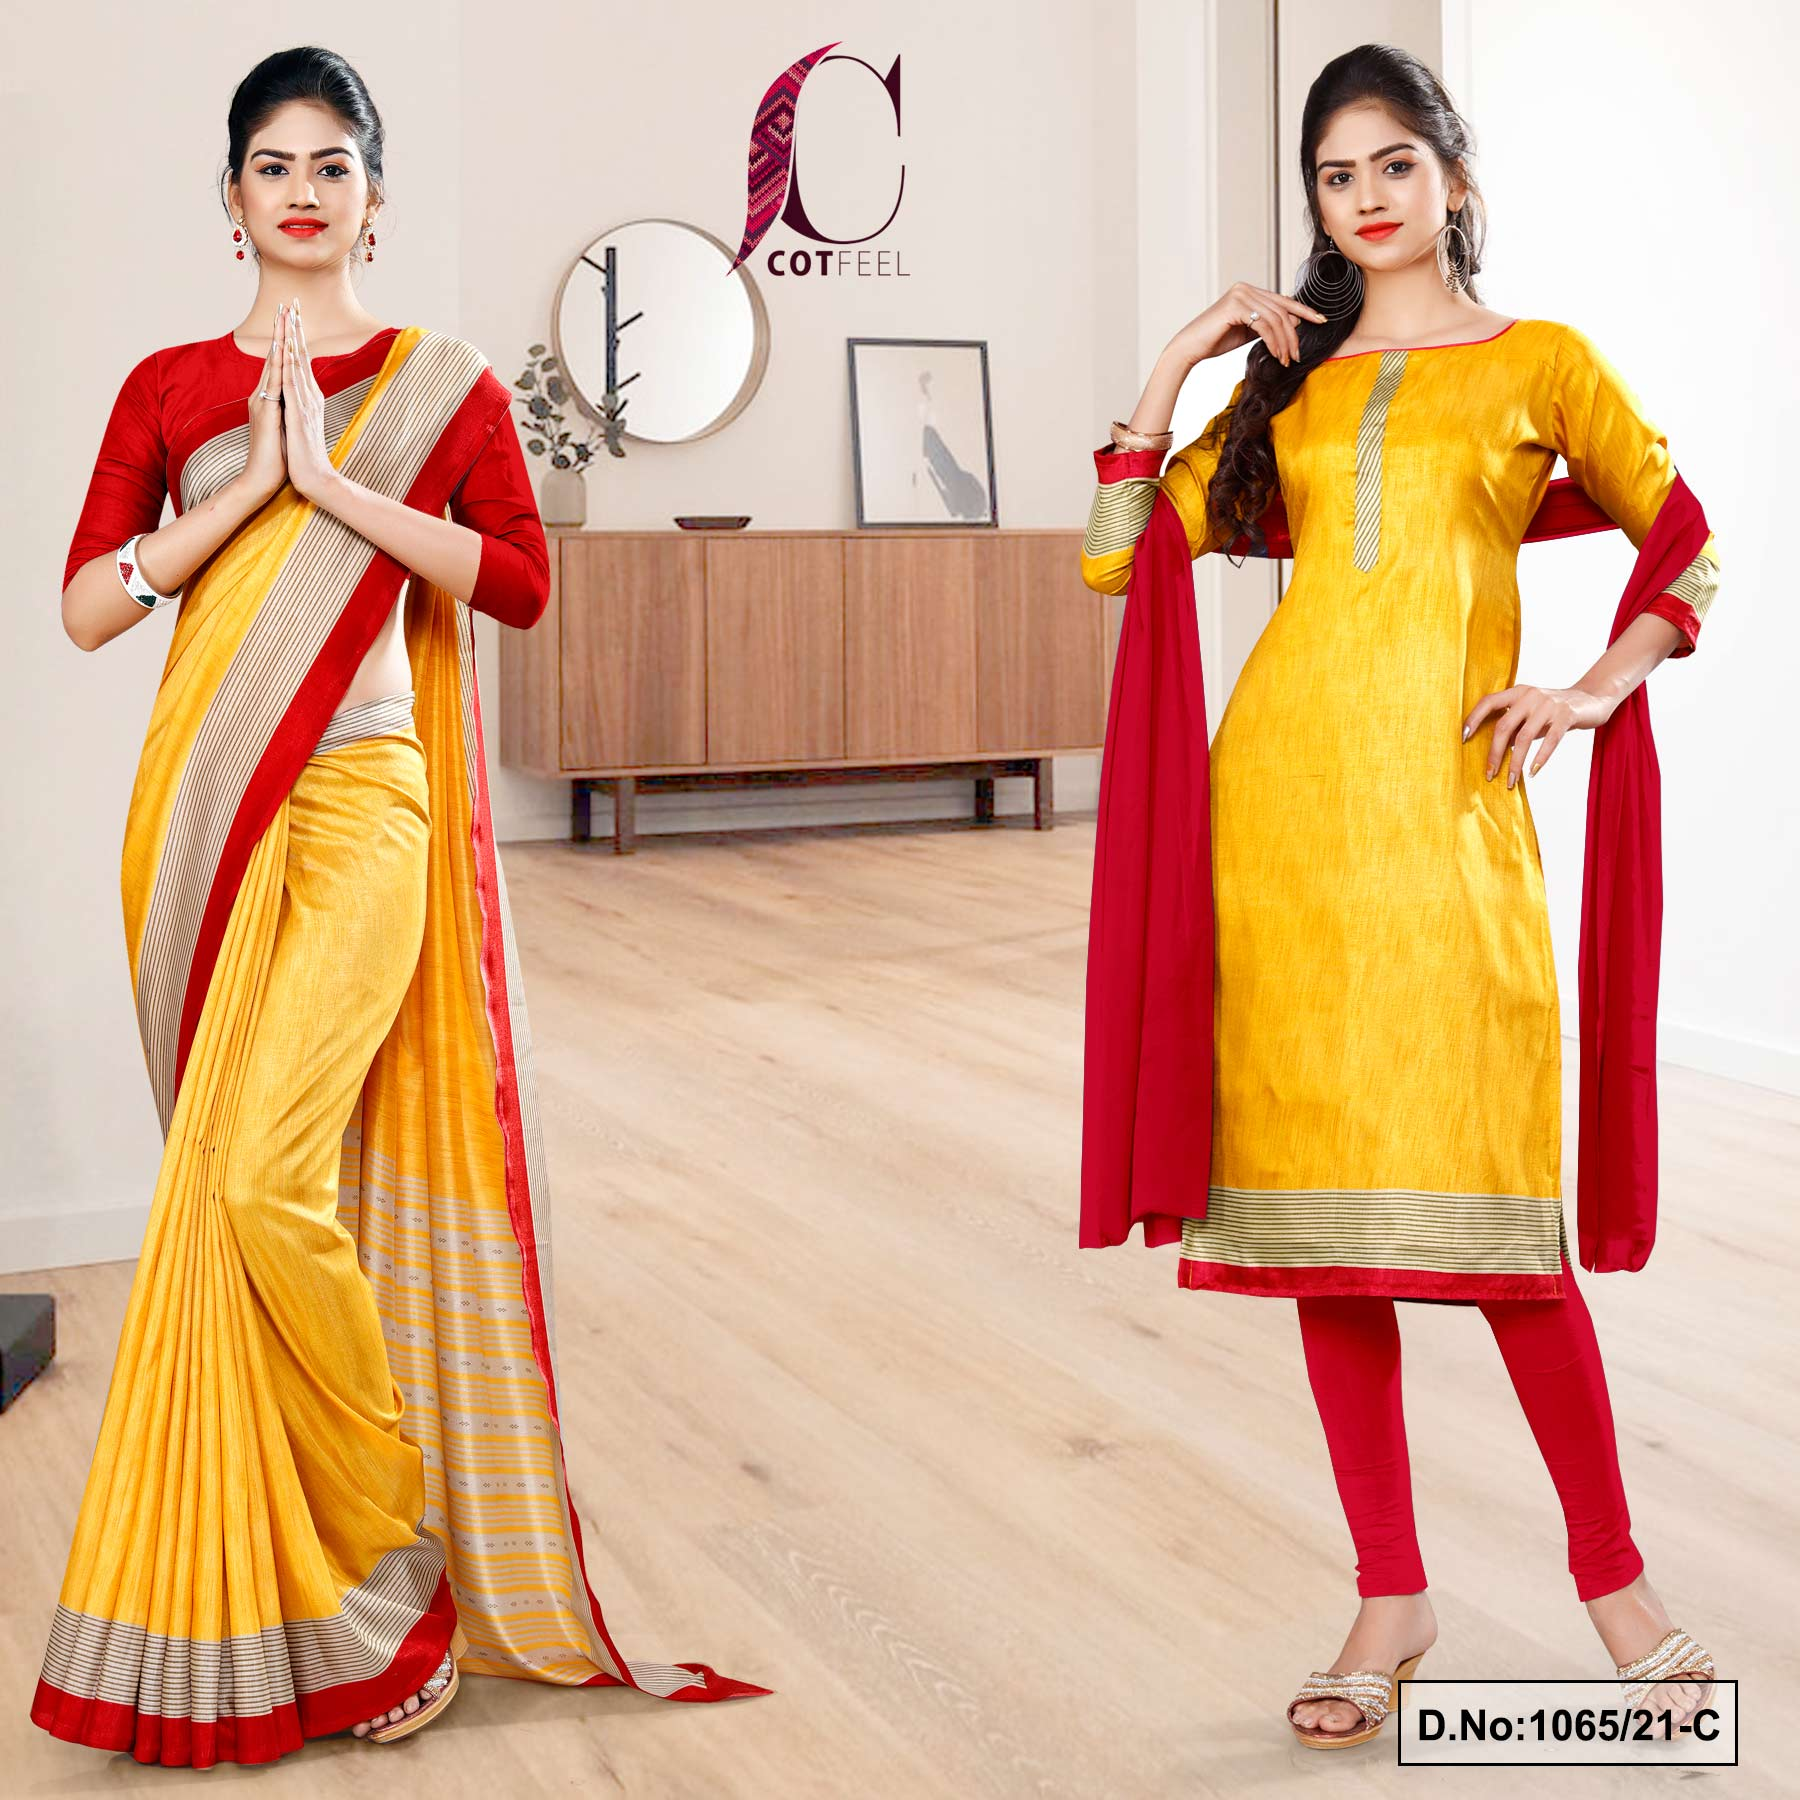 Yellow Red Plain Border Premium Polycotton CotFeel Saree Chudi Combo for Student Uniform Sarees 1065